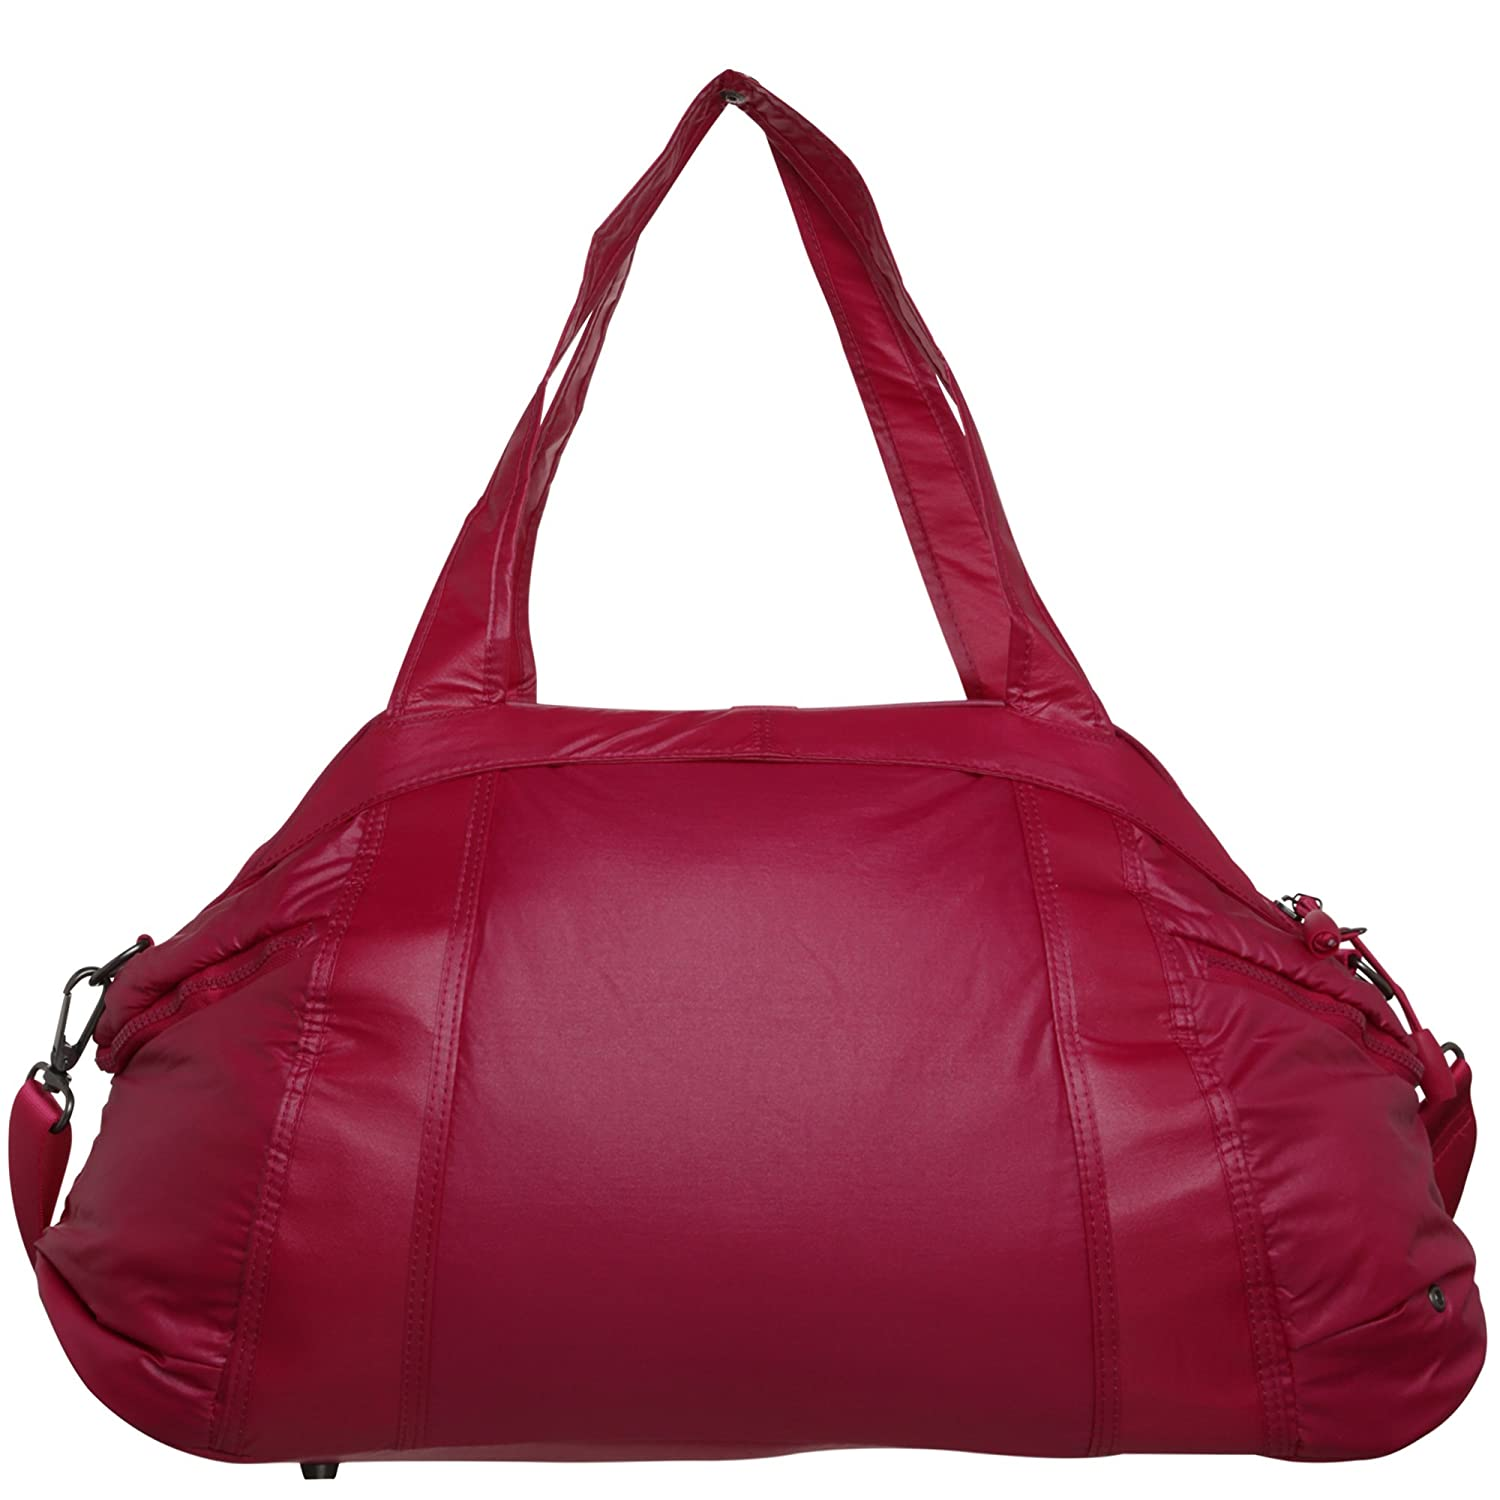 Amazoncom Nike Womens Victory Gym Club Duffle Bag Pink Clothing Fossil Lucy